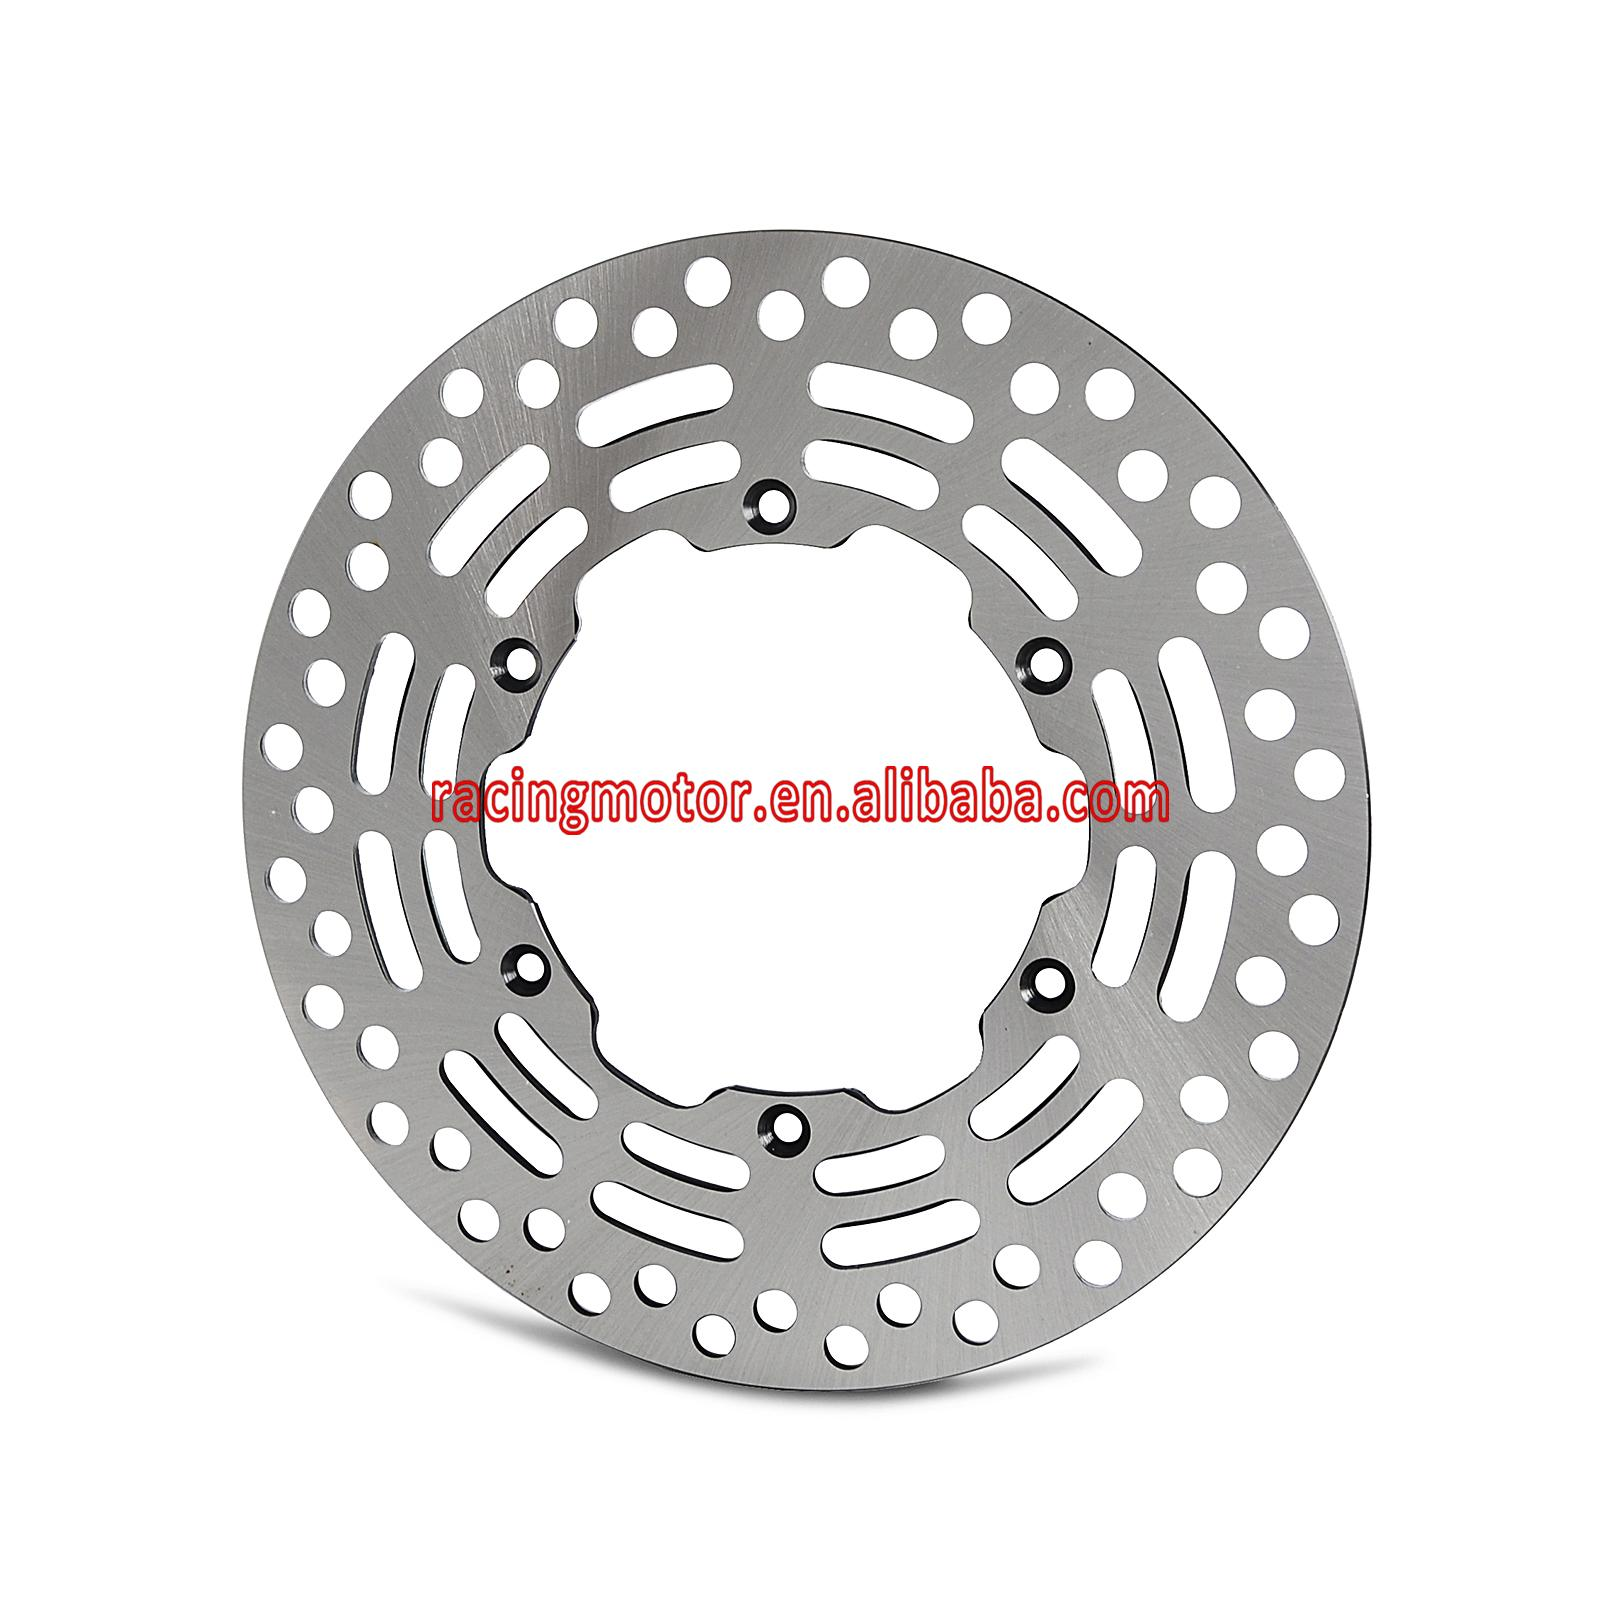 New Motorcycle Front Rotor Brake Disc For Suzuki RM 125 250 RMX 250 Kawasaki 400cc KLX 400 SR, R 2003-2006 motorcycle stainless steel 220mm rear brake disc rotor for kawasaki kdx125 kdx200 kdx 220 250 klx250 klx300 suzuki lx250 250 sb